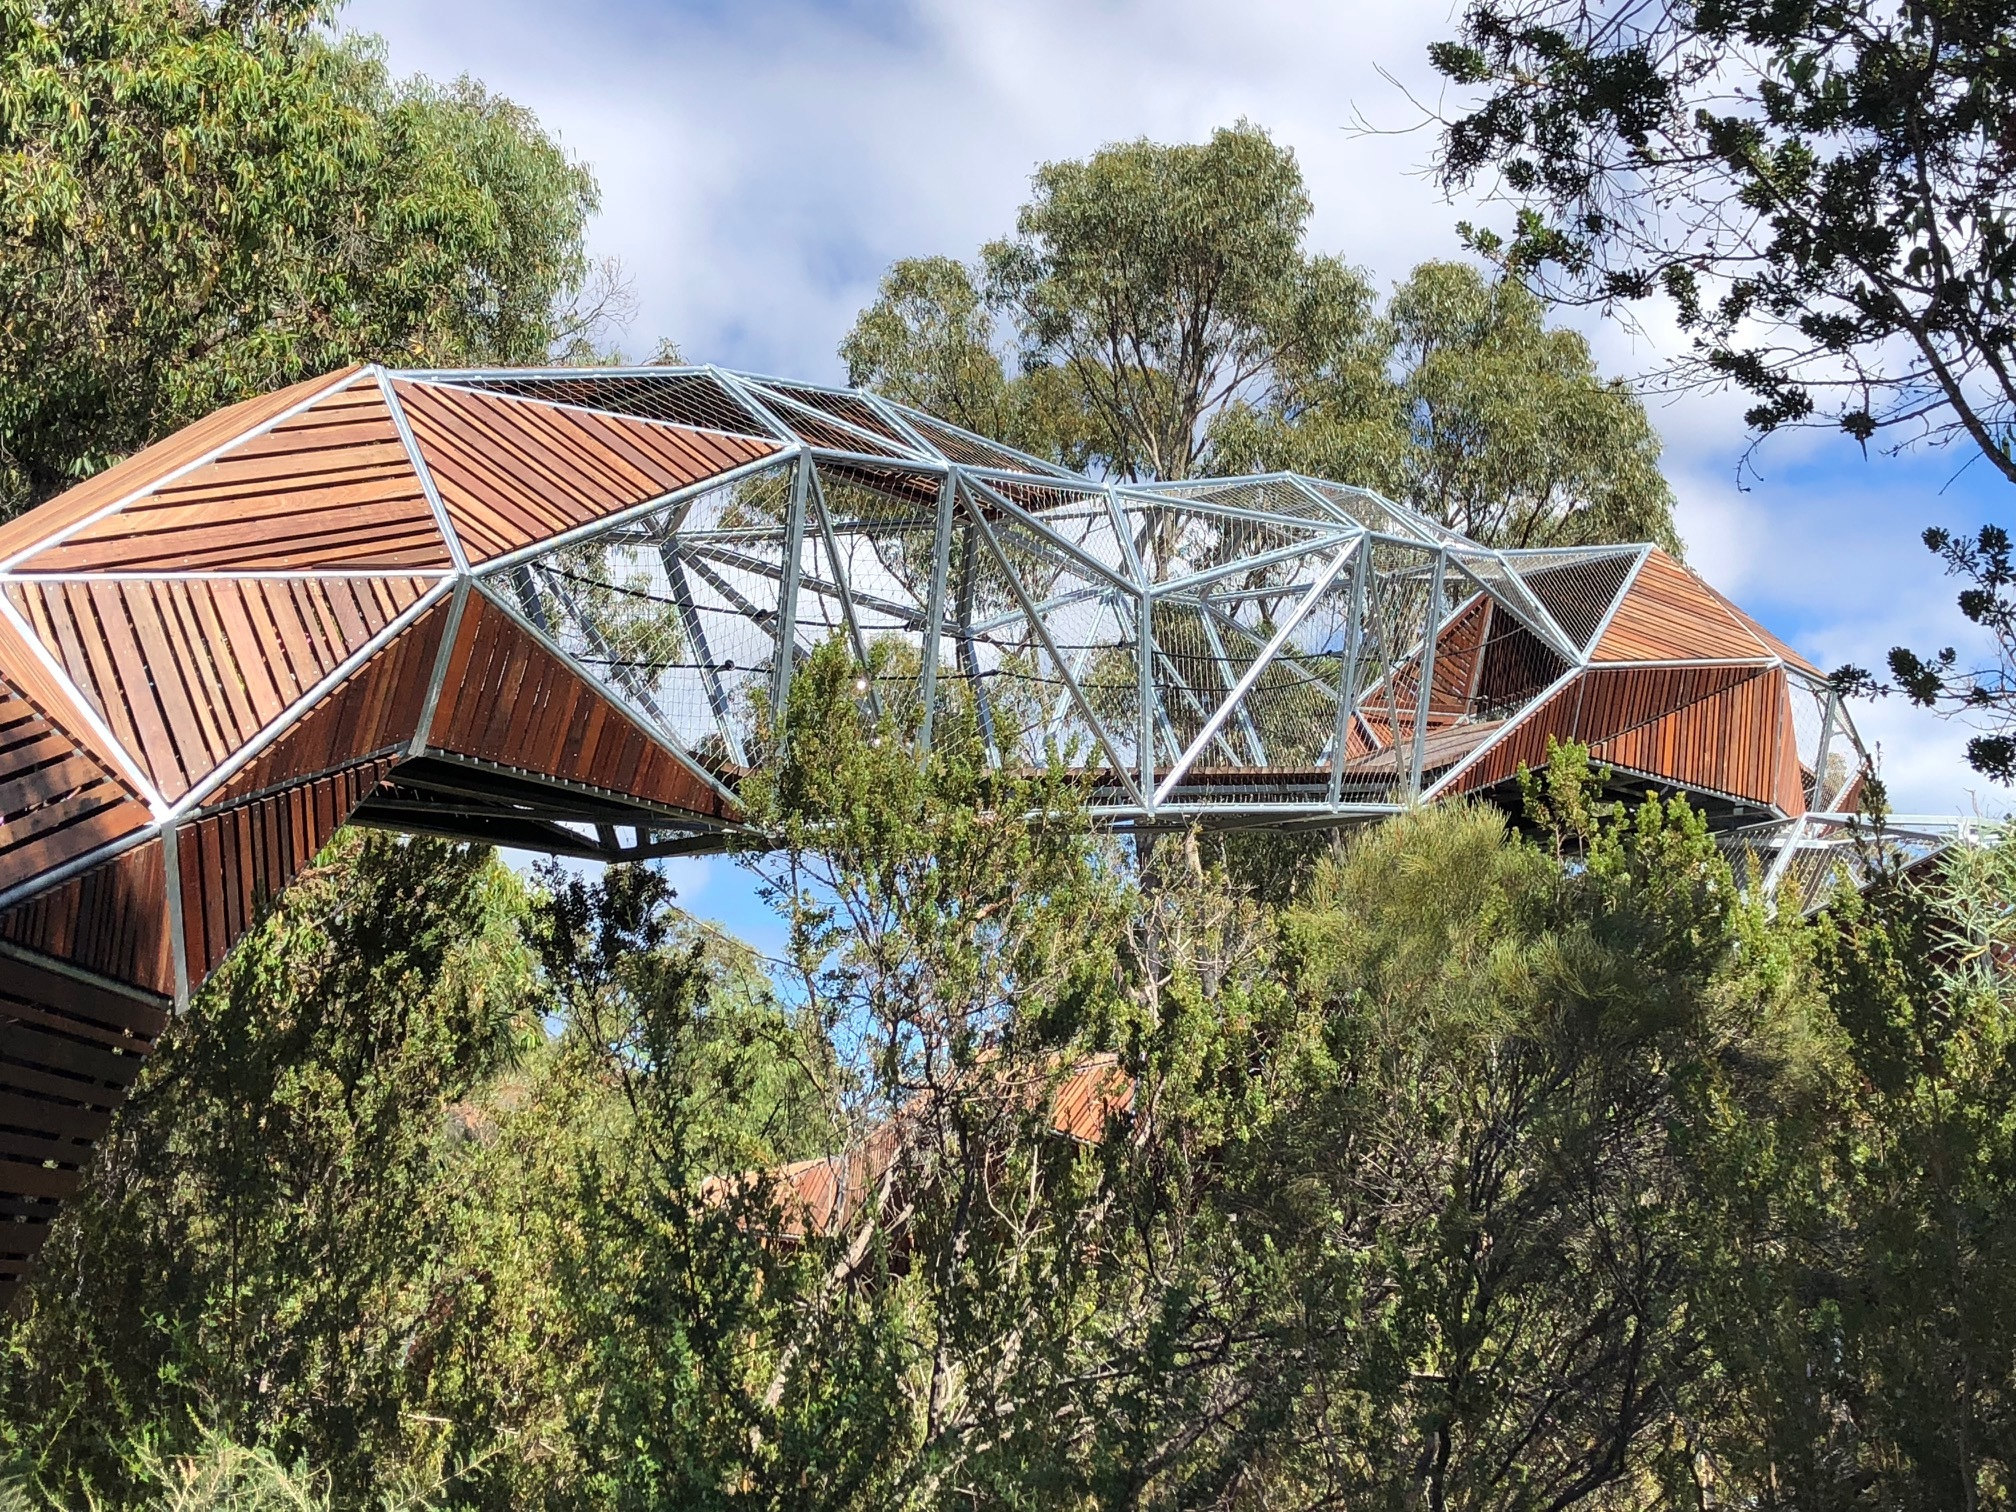 tinto rio naturescape kings park perth nature play natural completion revamp stage python hazards across walk